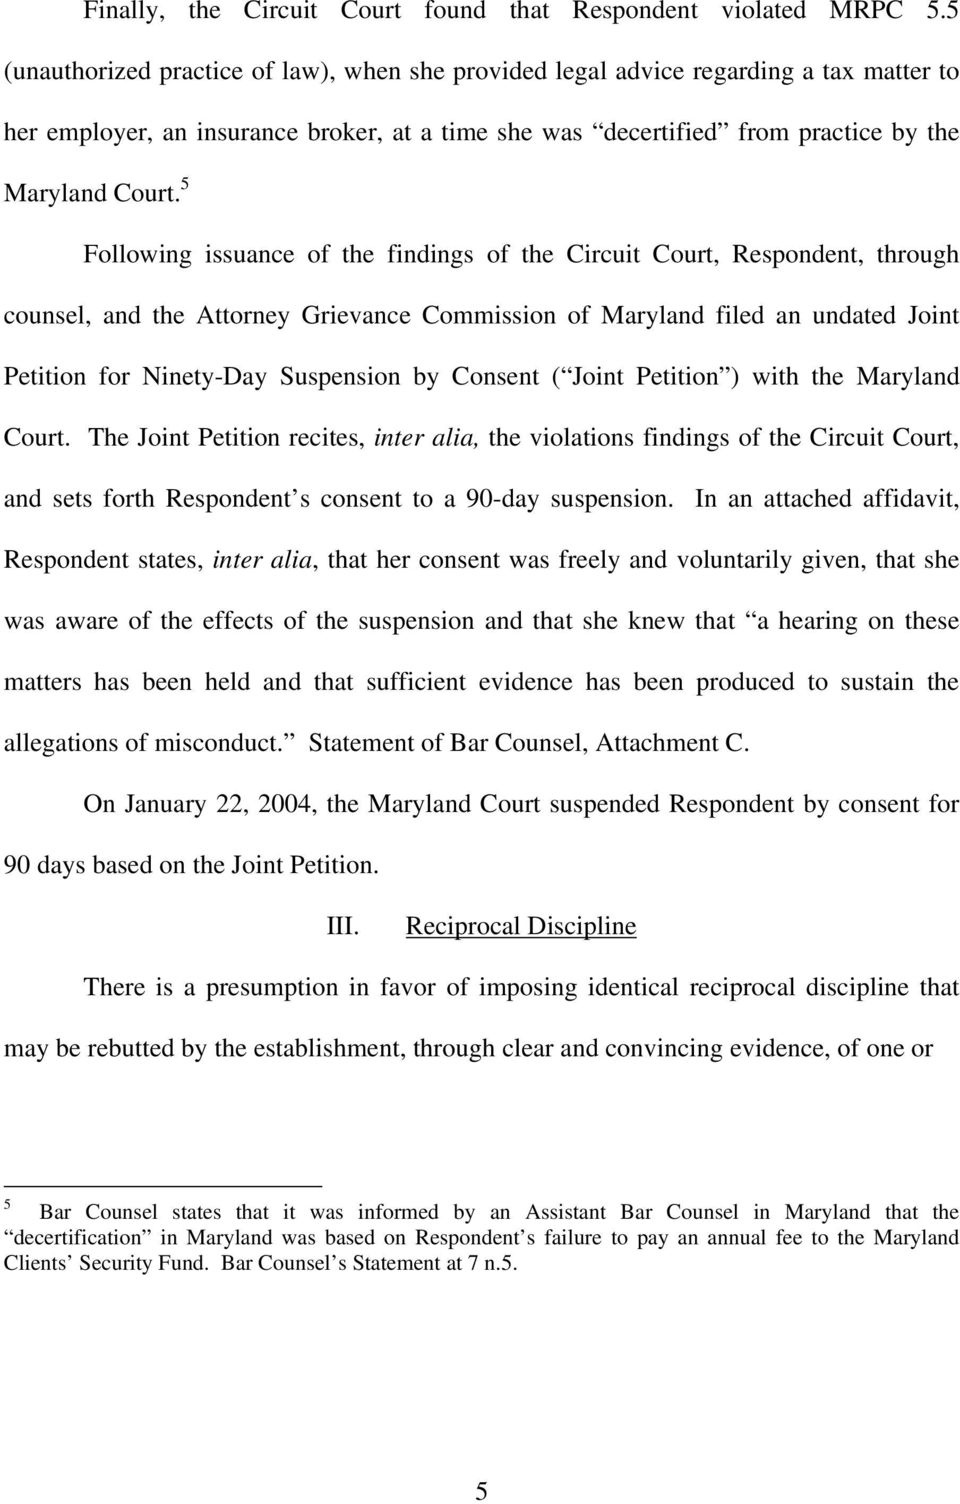 5 Following issuance of the findings of the Circuit Court, Respondent, through counsel, and the Attorney Grievance Commission of Maryland filed an undated Joint Petition for Ninety-Day Suspension by